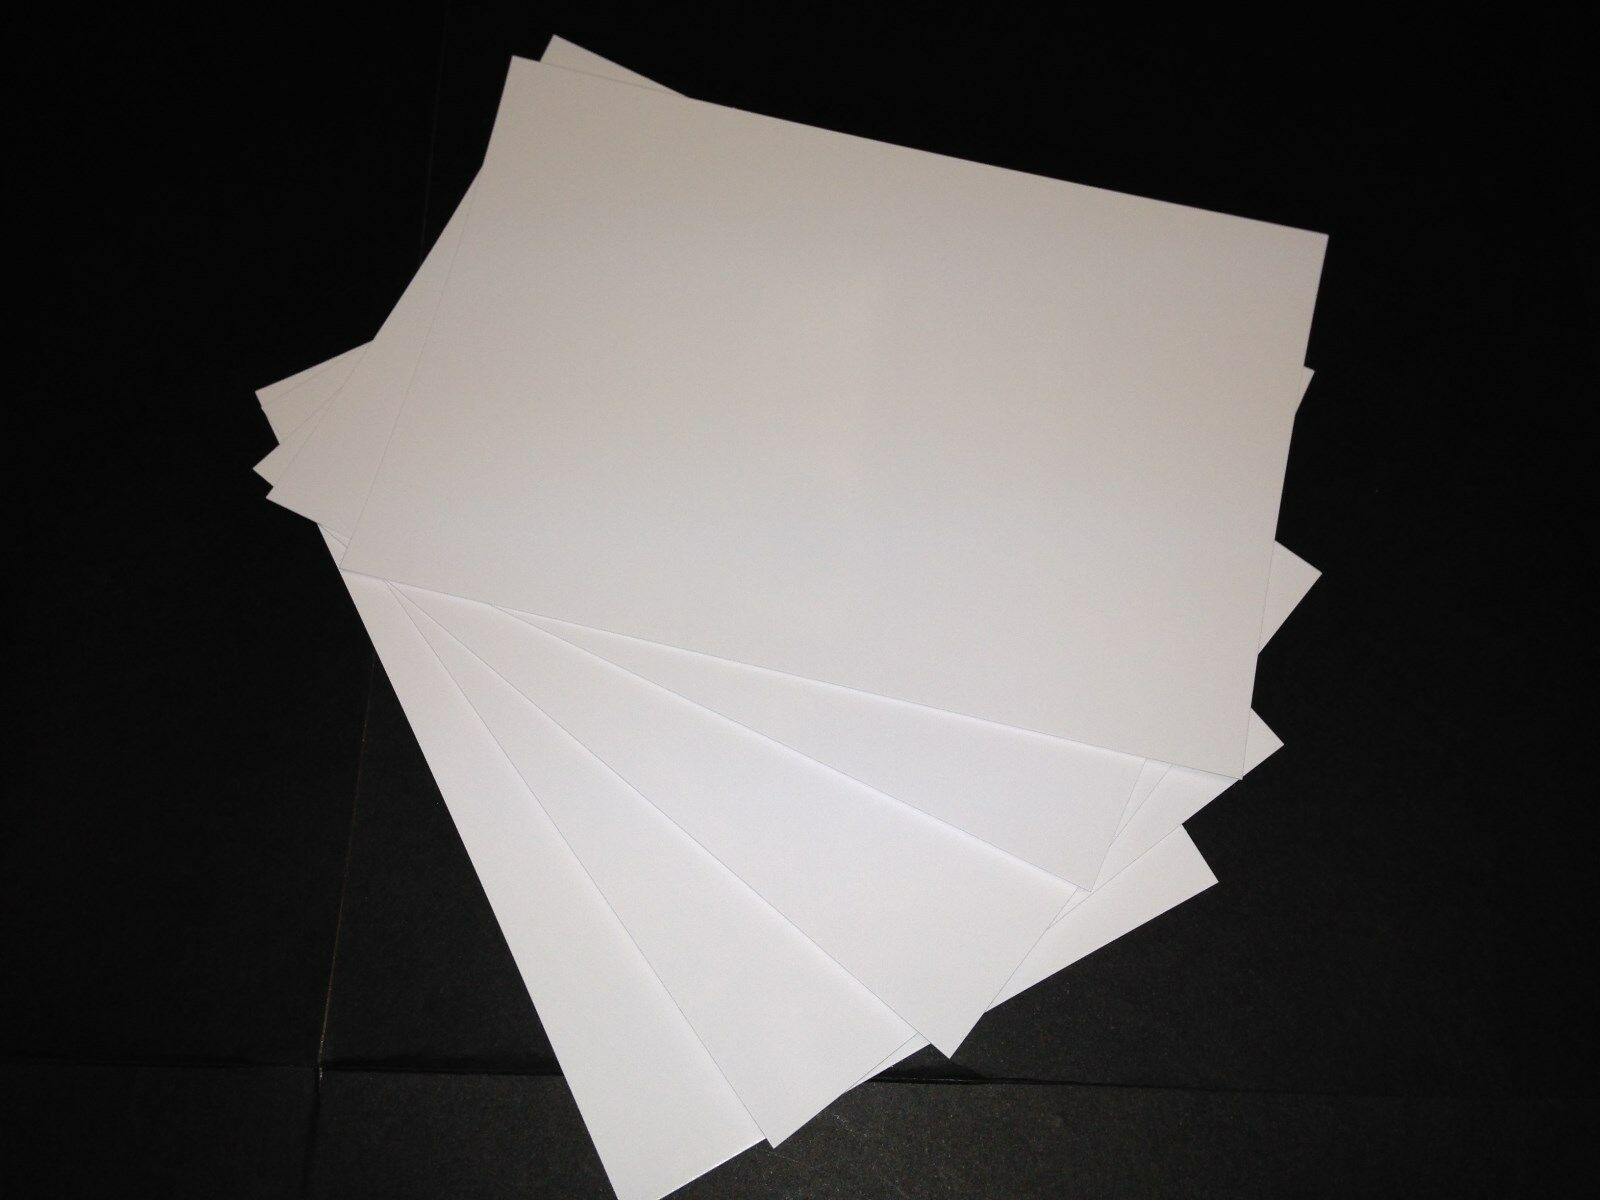 Universal Office Products 15802 Printer Paper 2400 sheets 20lb